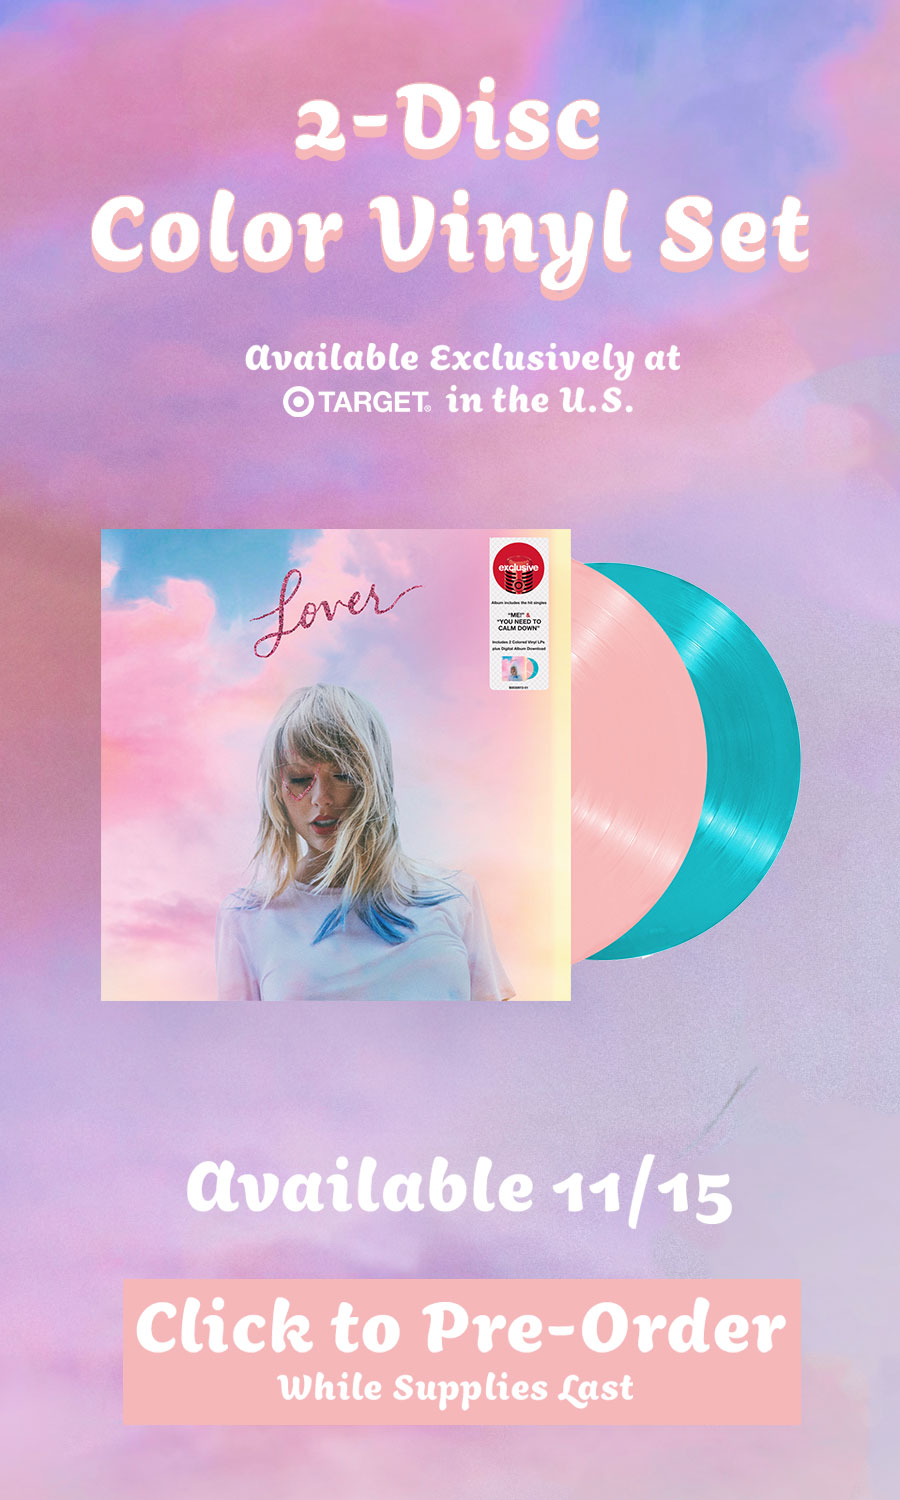 2-Disc Color Vinyl Set Available Exclusively at Target in the U.S. Available 11/15 while supplies last